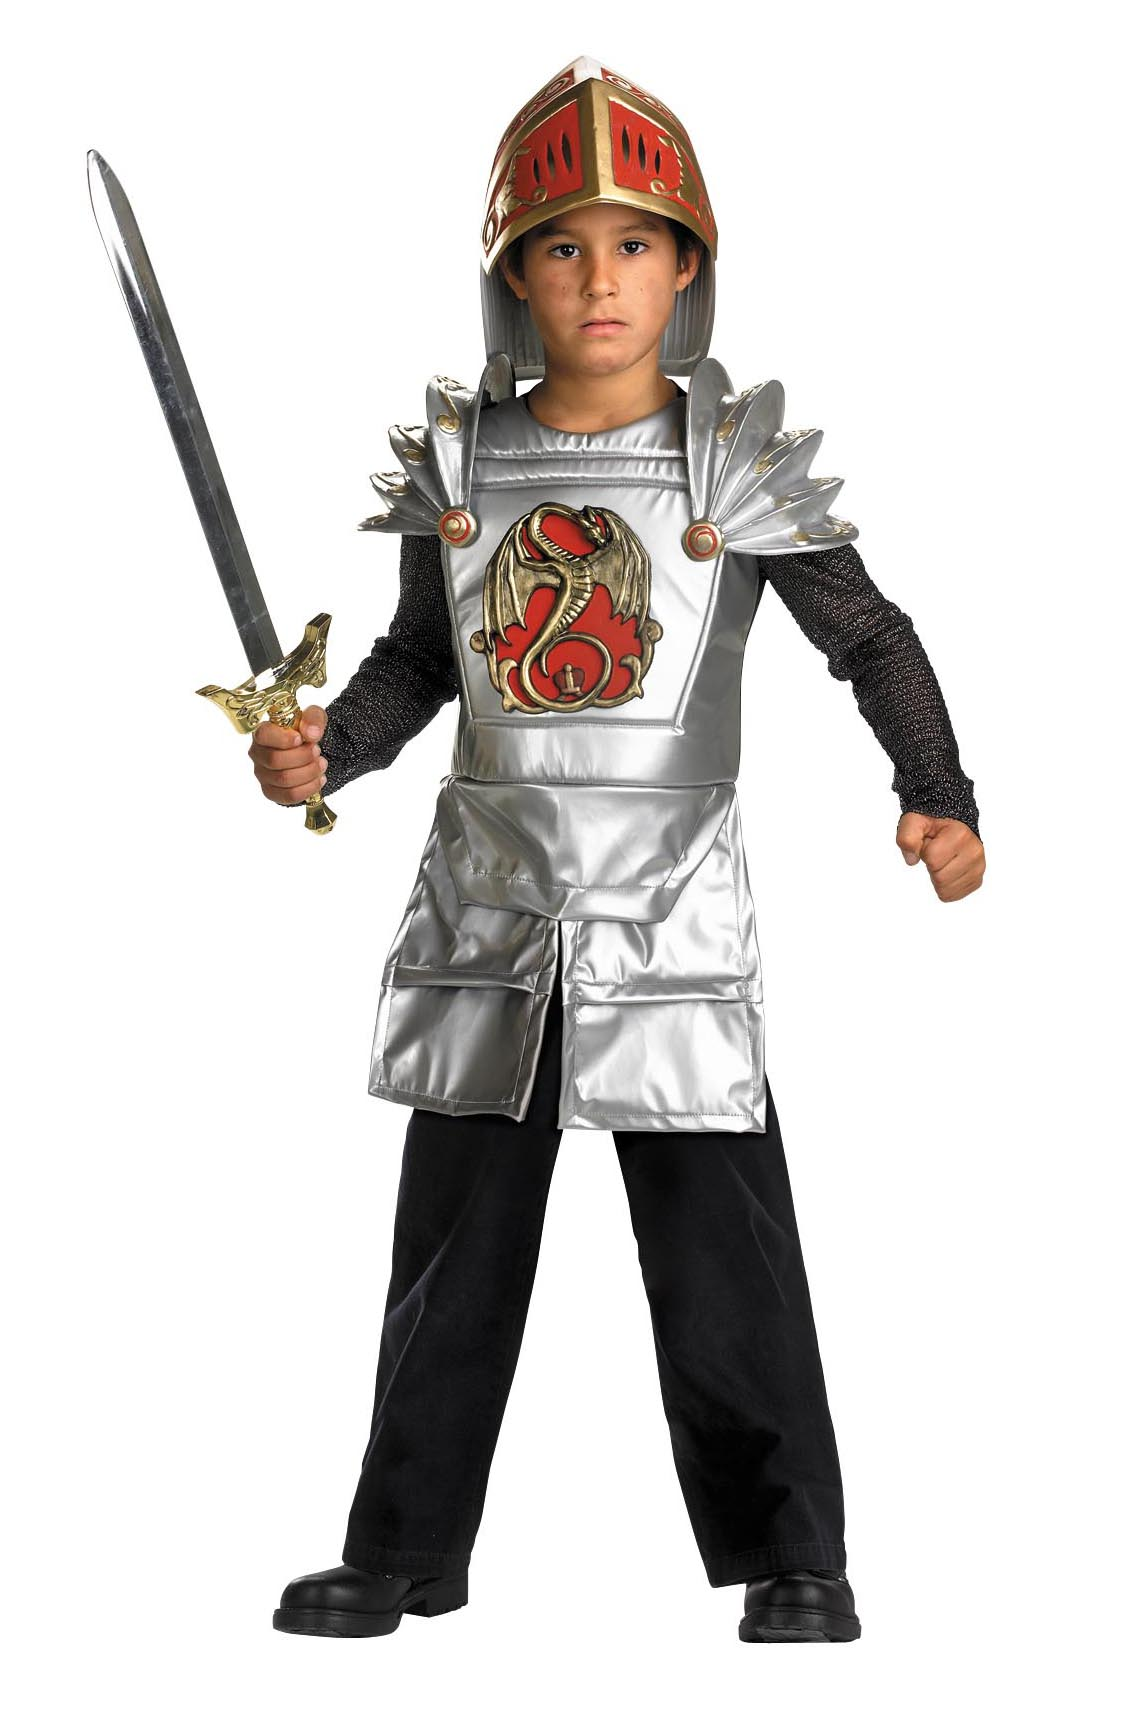 ... kids parties costume; knight costume costumes fc; spartan ...  sc 1 st  The Halloween - aaasne & Spartan Halloween Costume Kids - The Halloween